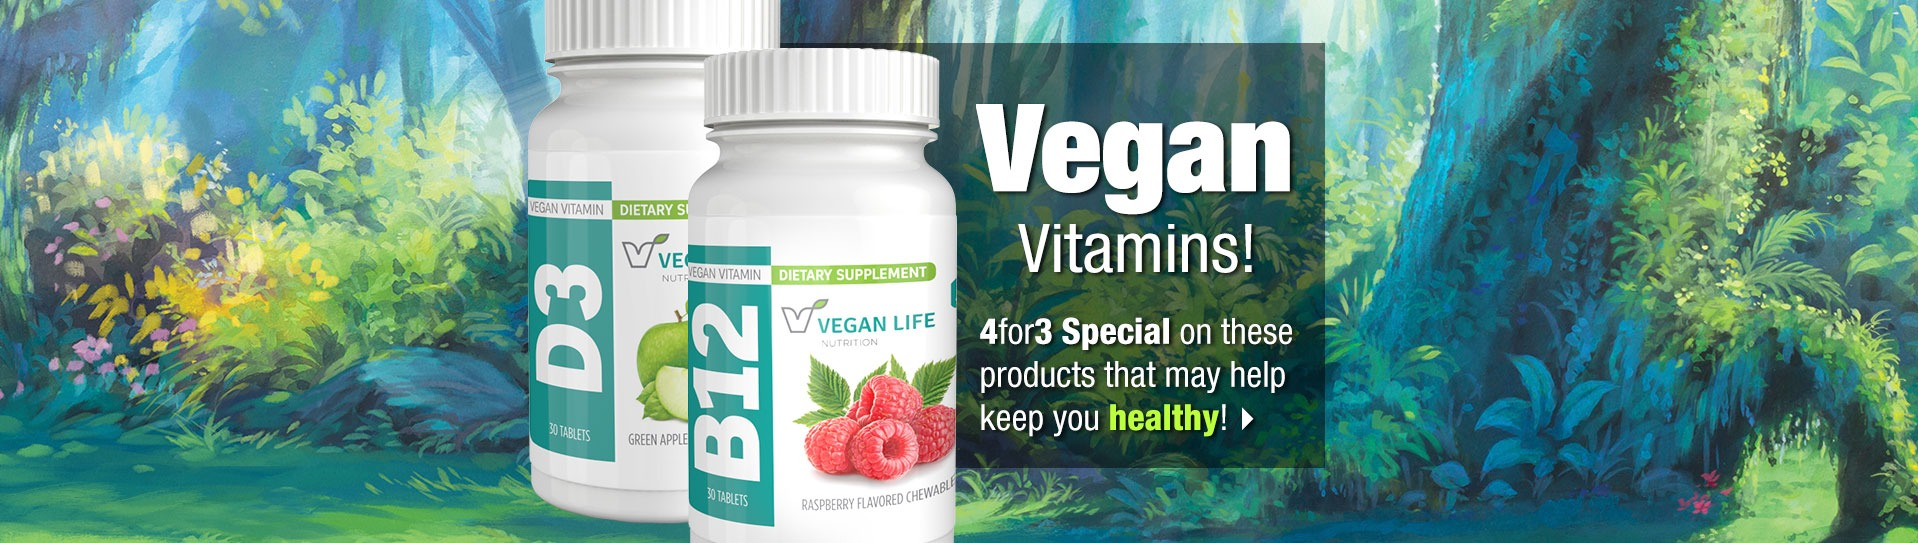 Slide - 4 for 3 Vegan Vitamins